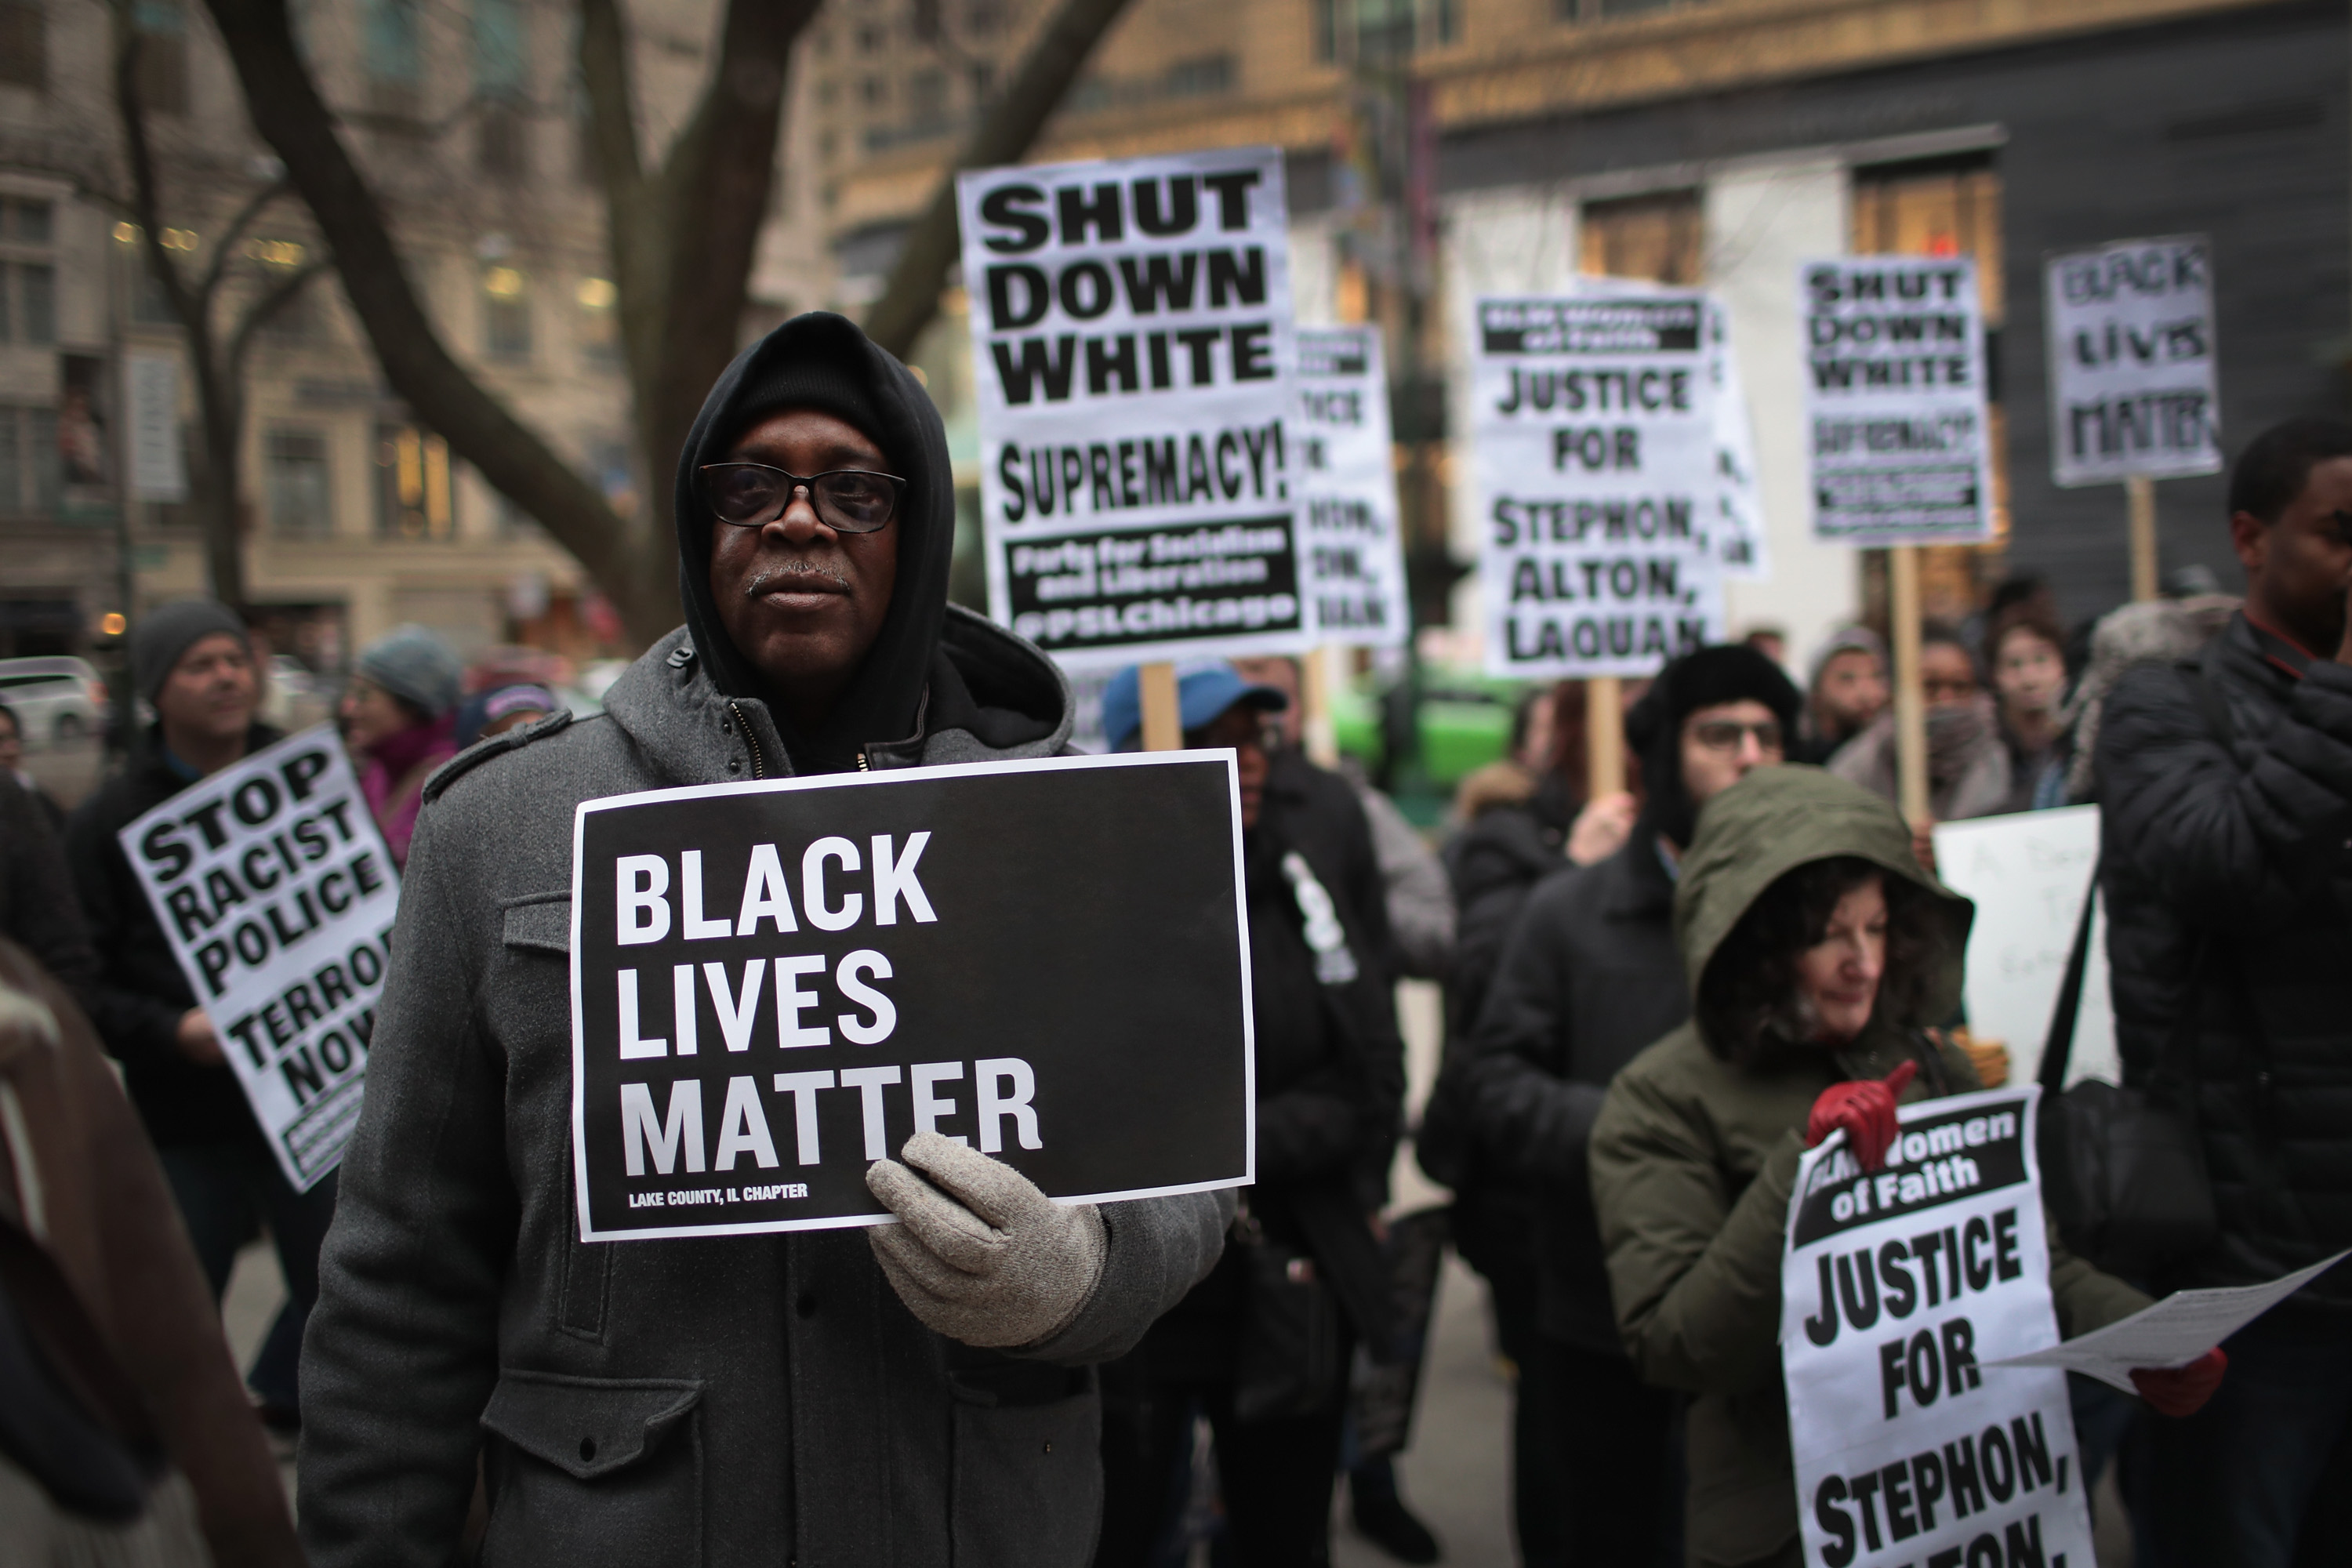 In recognition of the 50th anniversary of the death of Dr. Martin Luther King Jr., and in solidarity with the family and supporters of Stephon Clark and others killed by police, demonstrators protest and march in the Magnificent Mile shopping district on April 2, 2018, in Chicago, Illinois. (Getty)